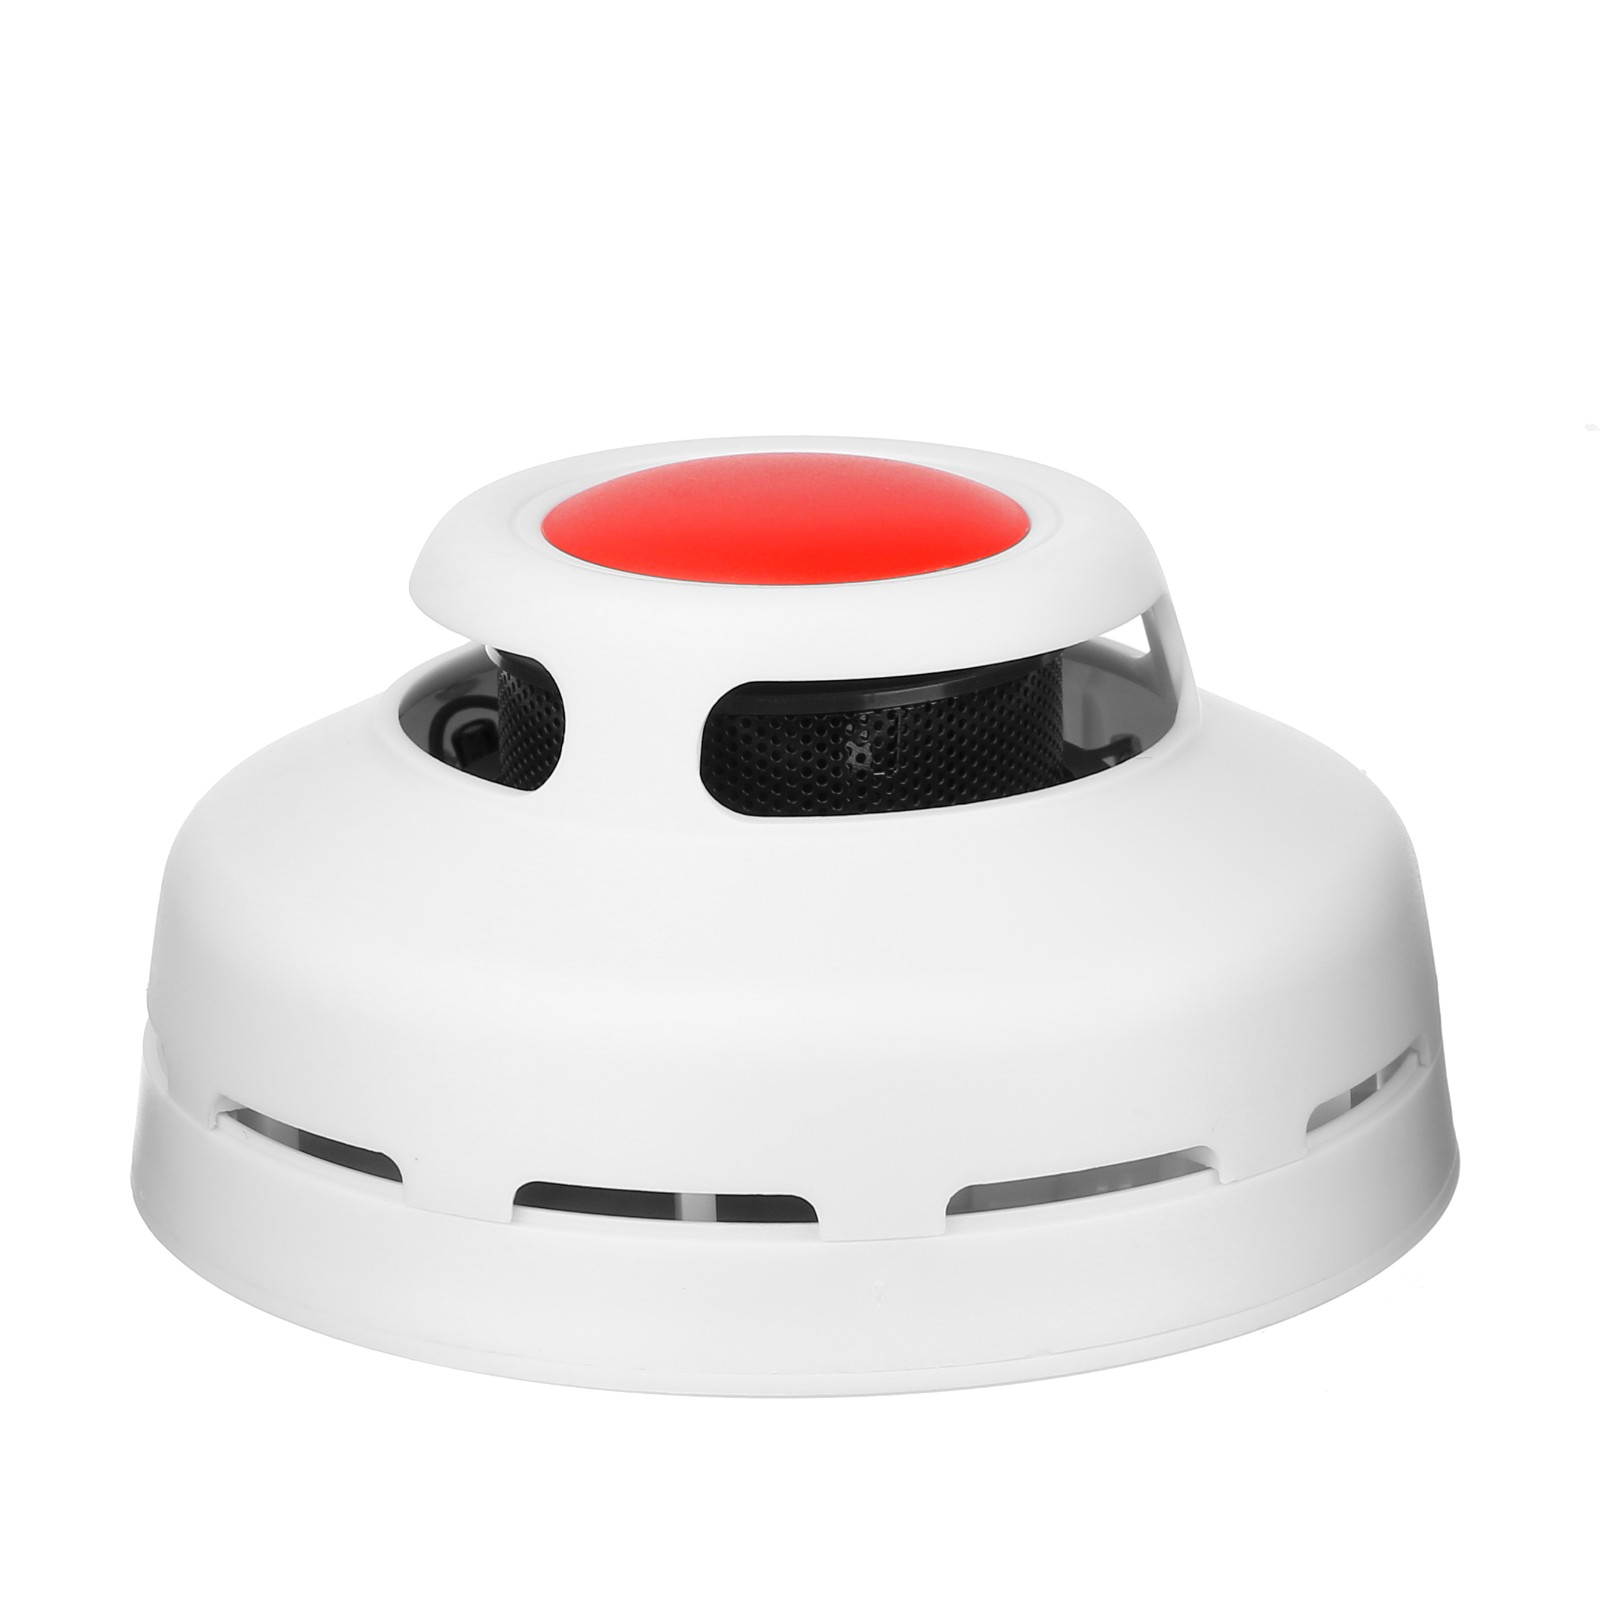 NEW Smoke Alarm smoke detector alarm Photoelectric Sensor Detects Flaming Fires For Home Security Alarm System